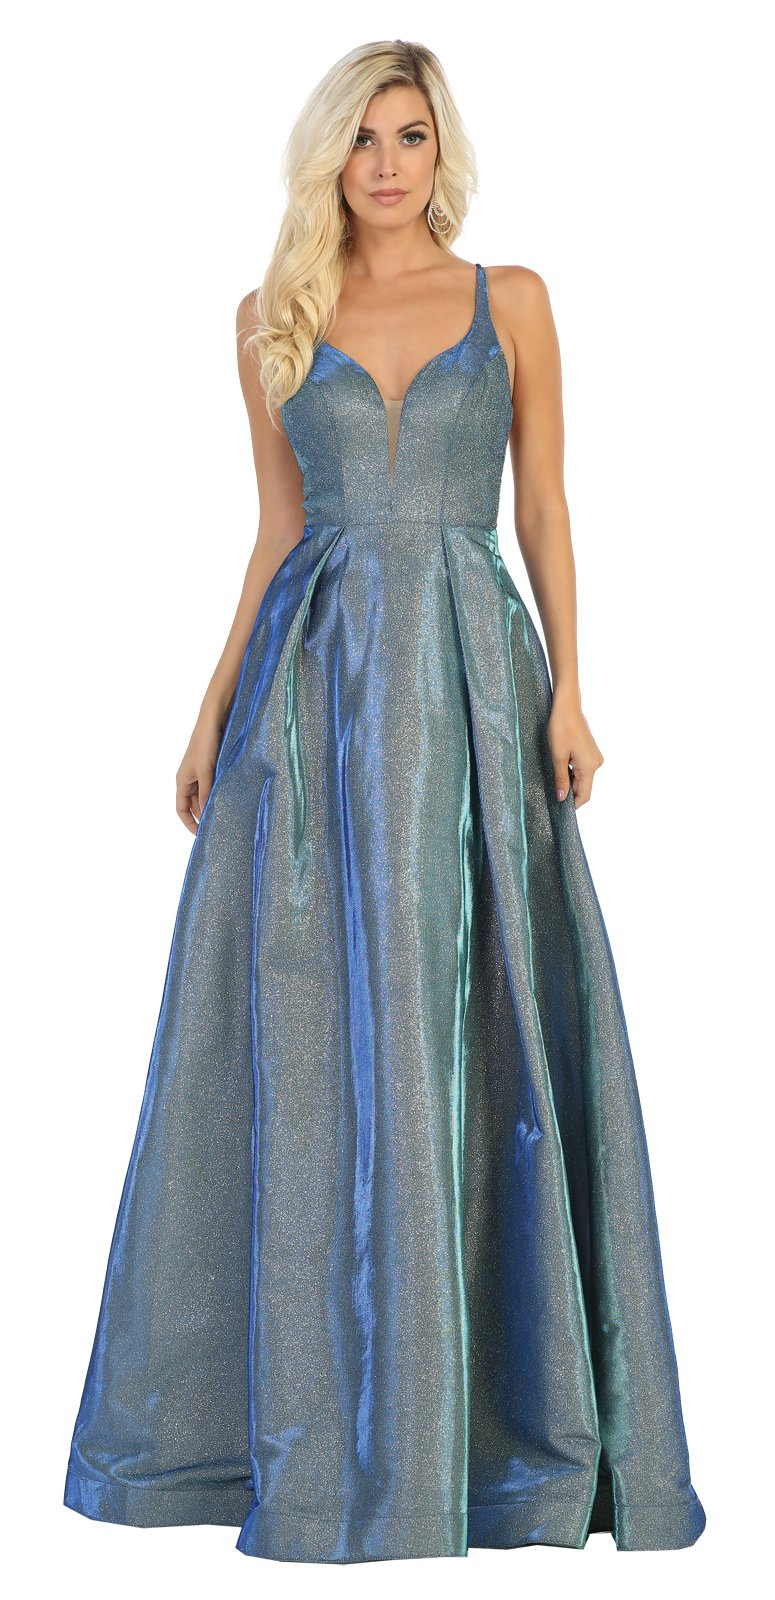 Royal Metallic Sweetheart Neckline Prom Dress